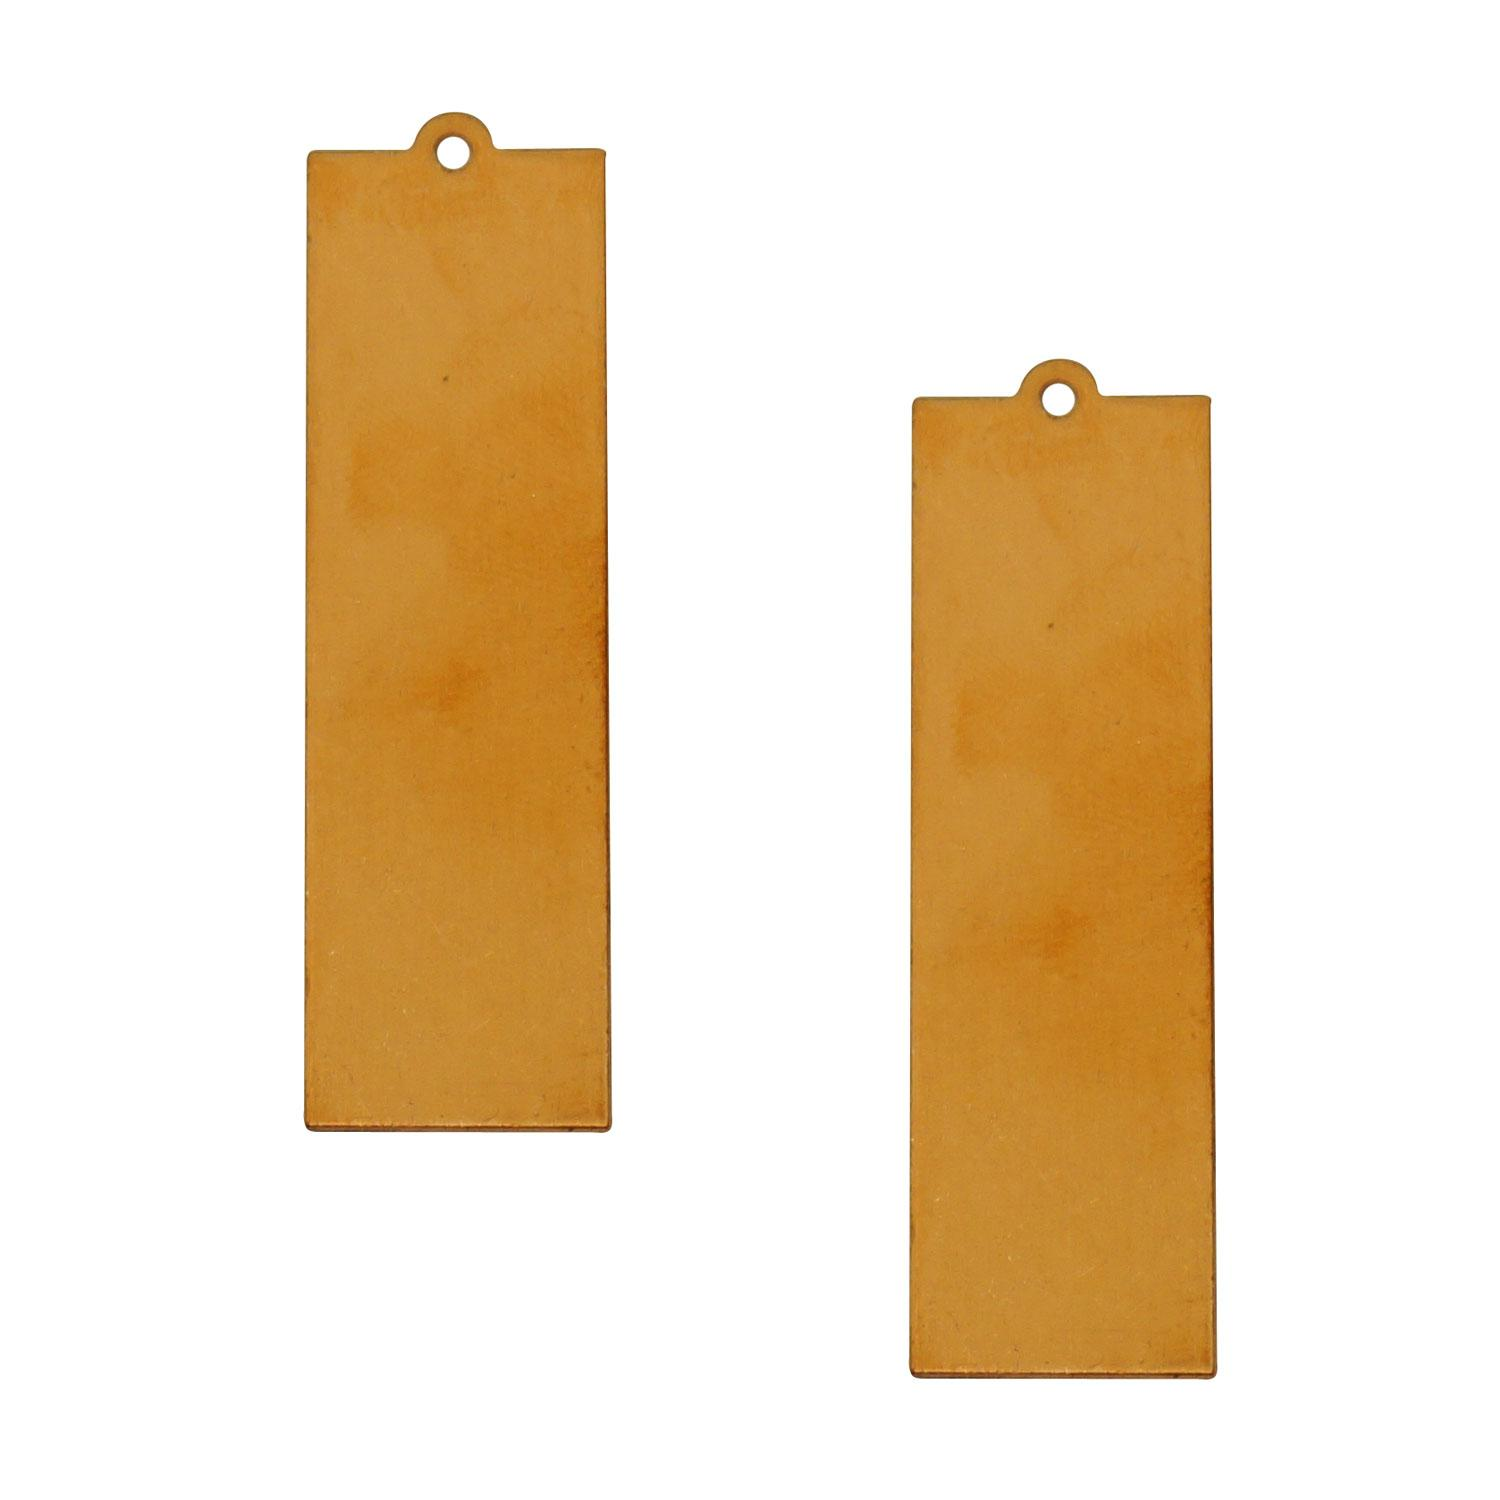 Large Slim Rectangle Copper Shape with Tab - 2 Pack